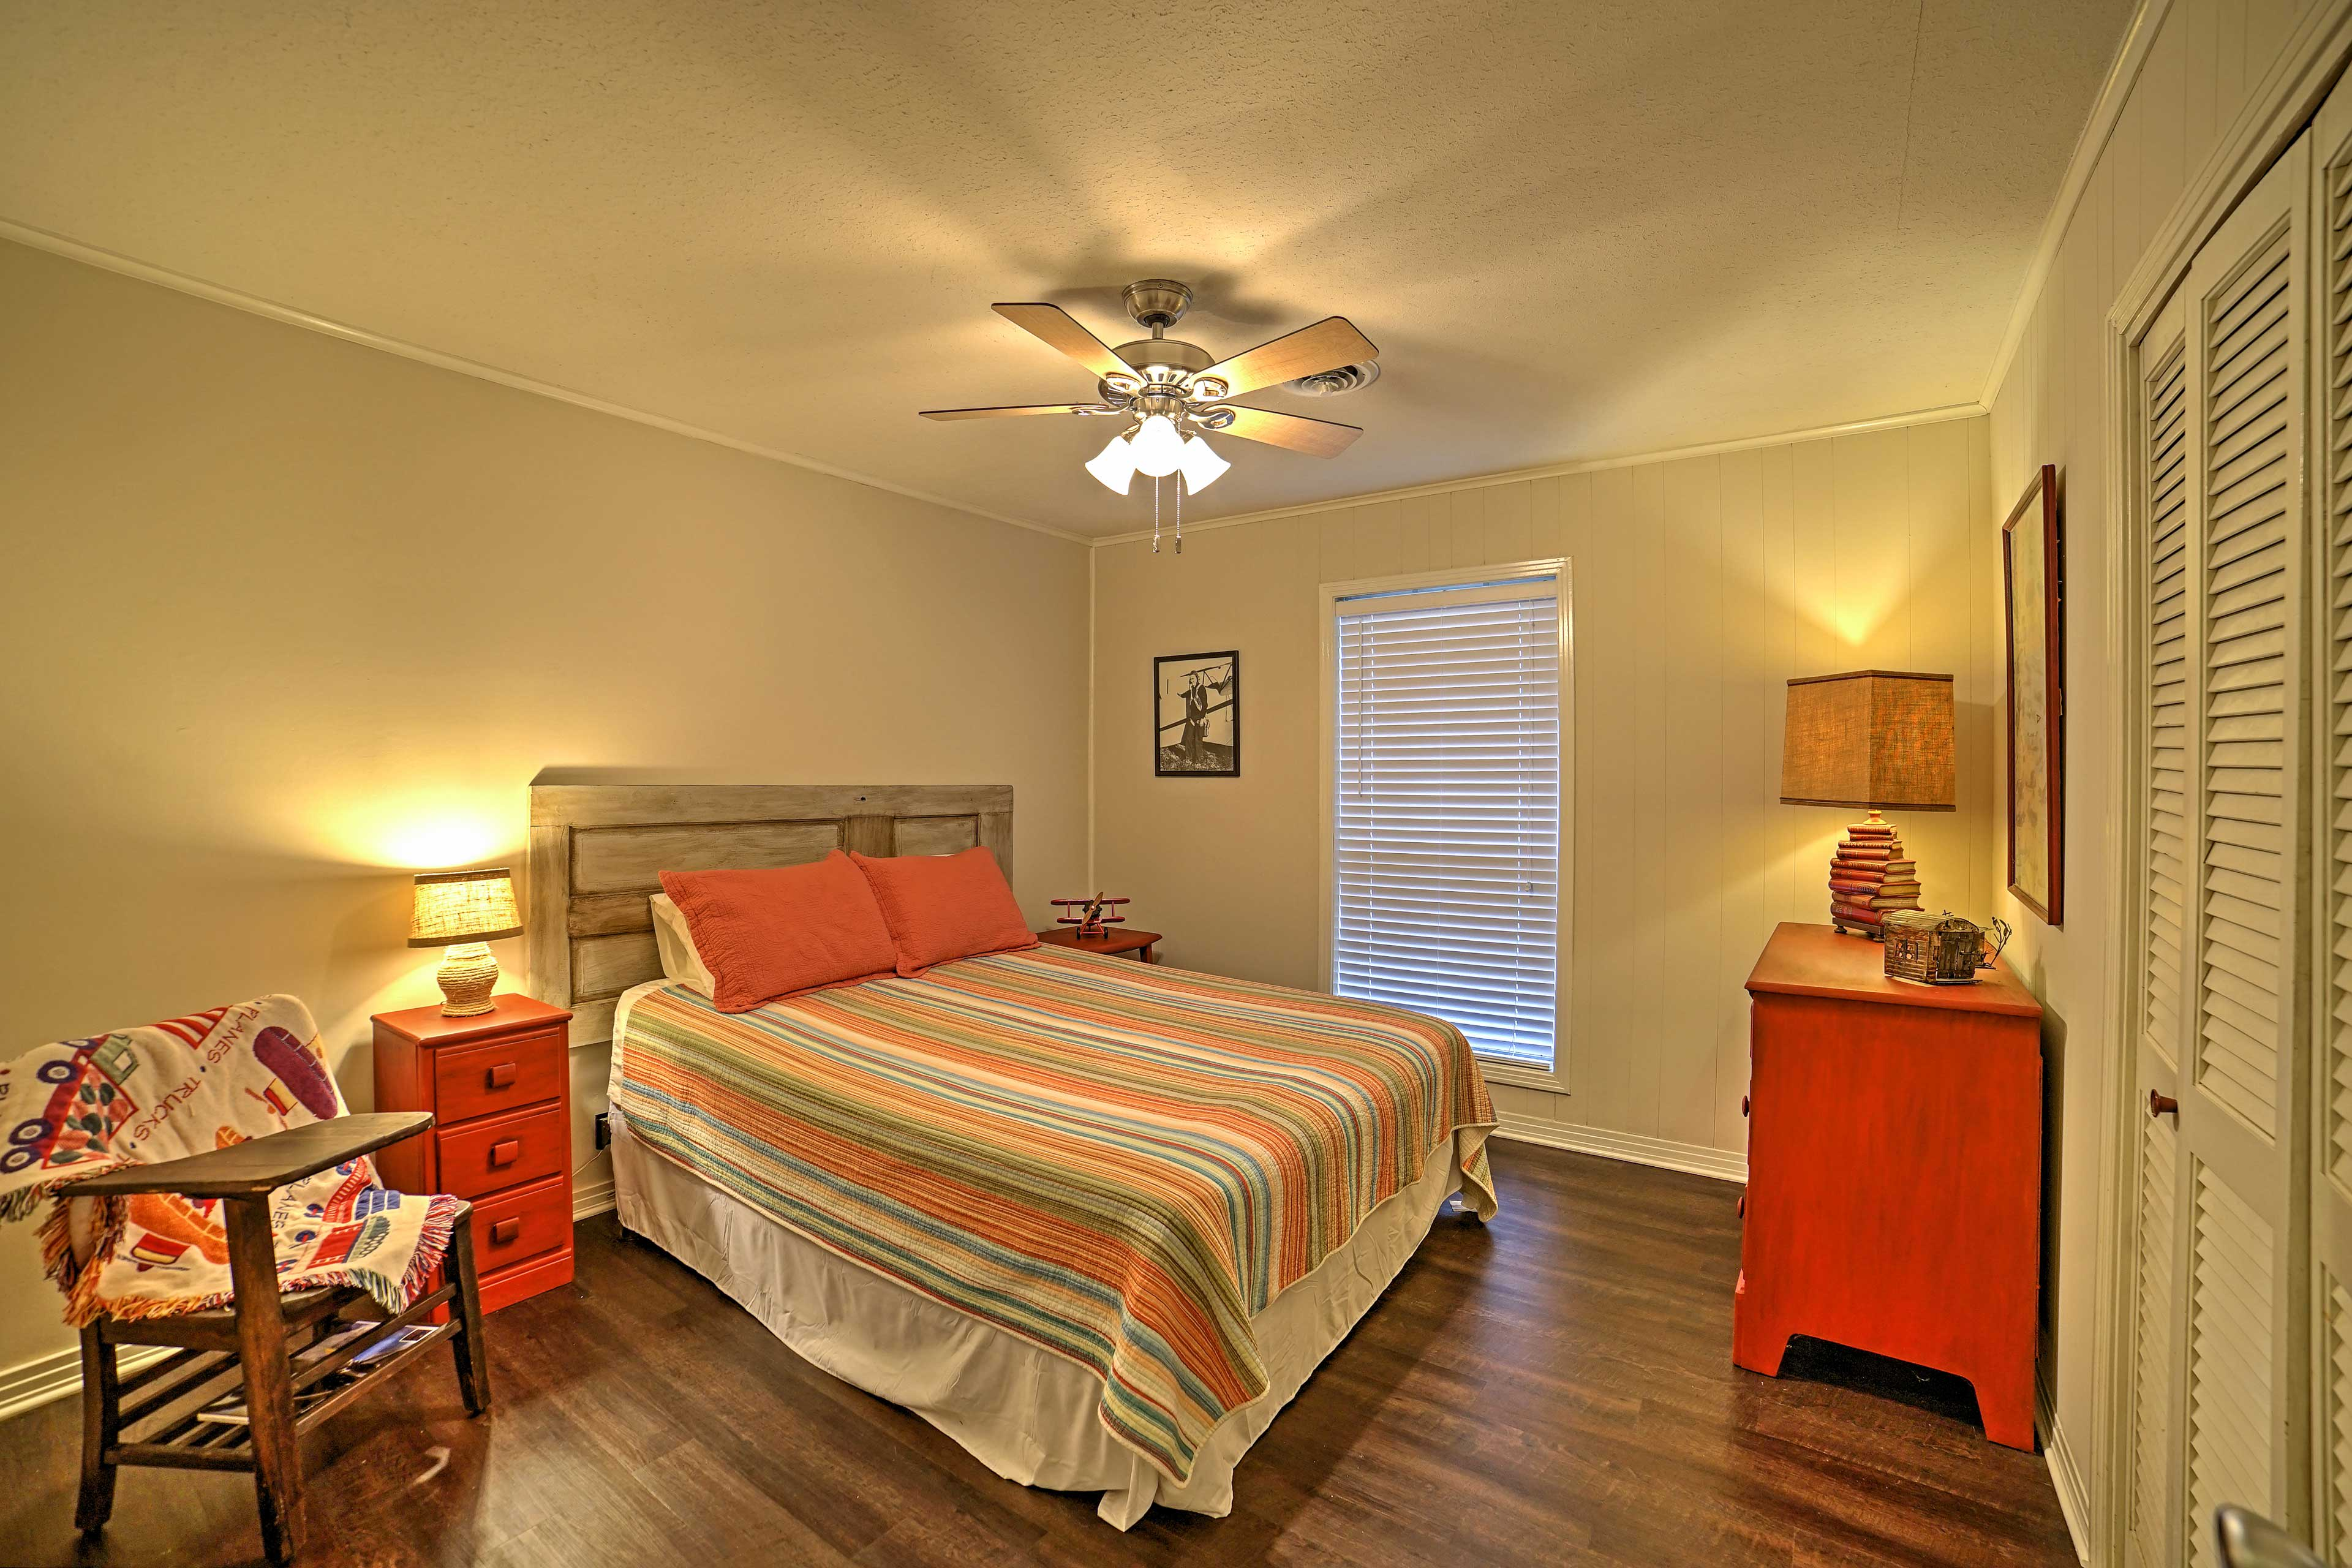 The home features 3 bedrooms for guests to sleep in.